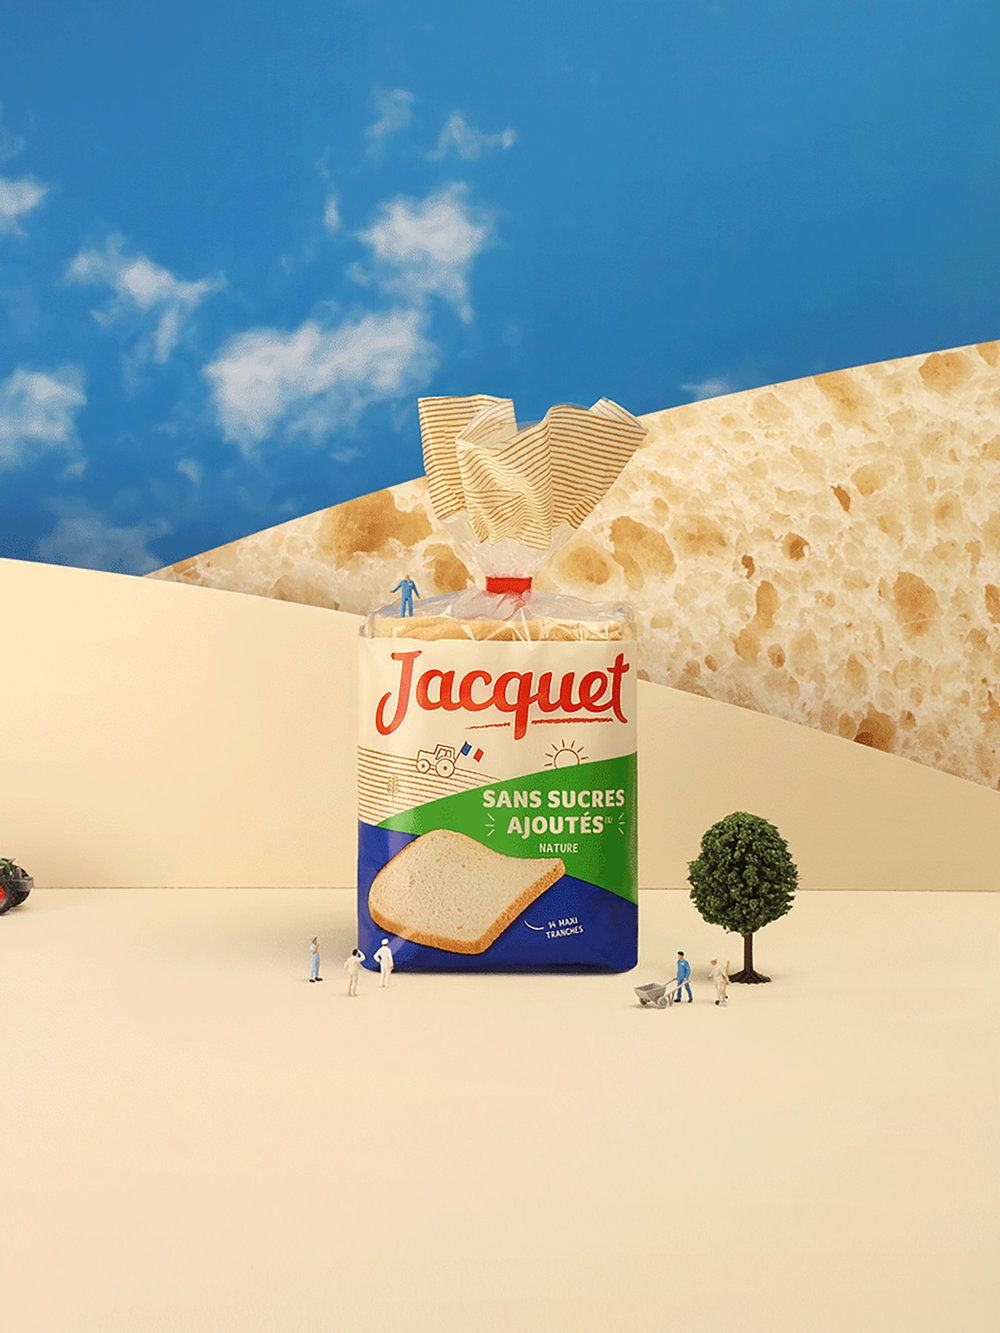 jacquet-packaging-animation-ssa-900x1200.jpg